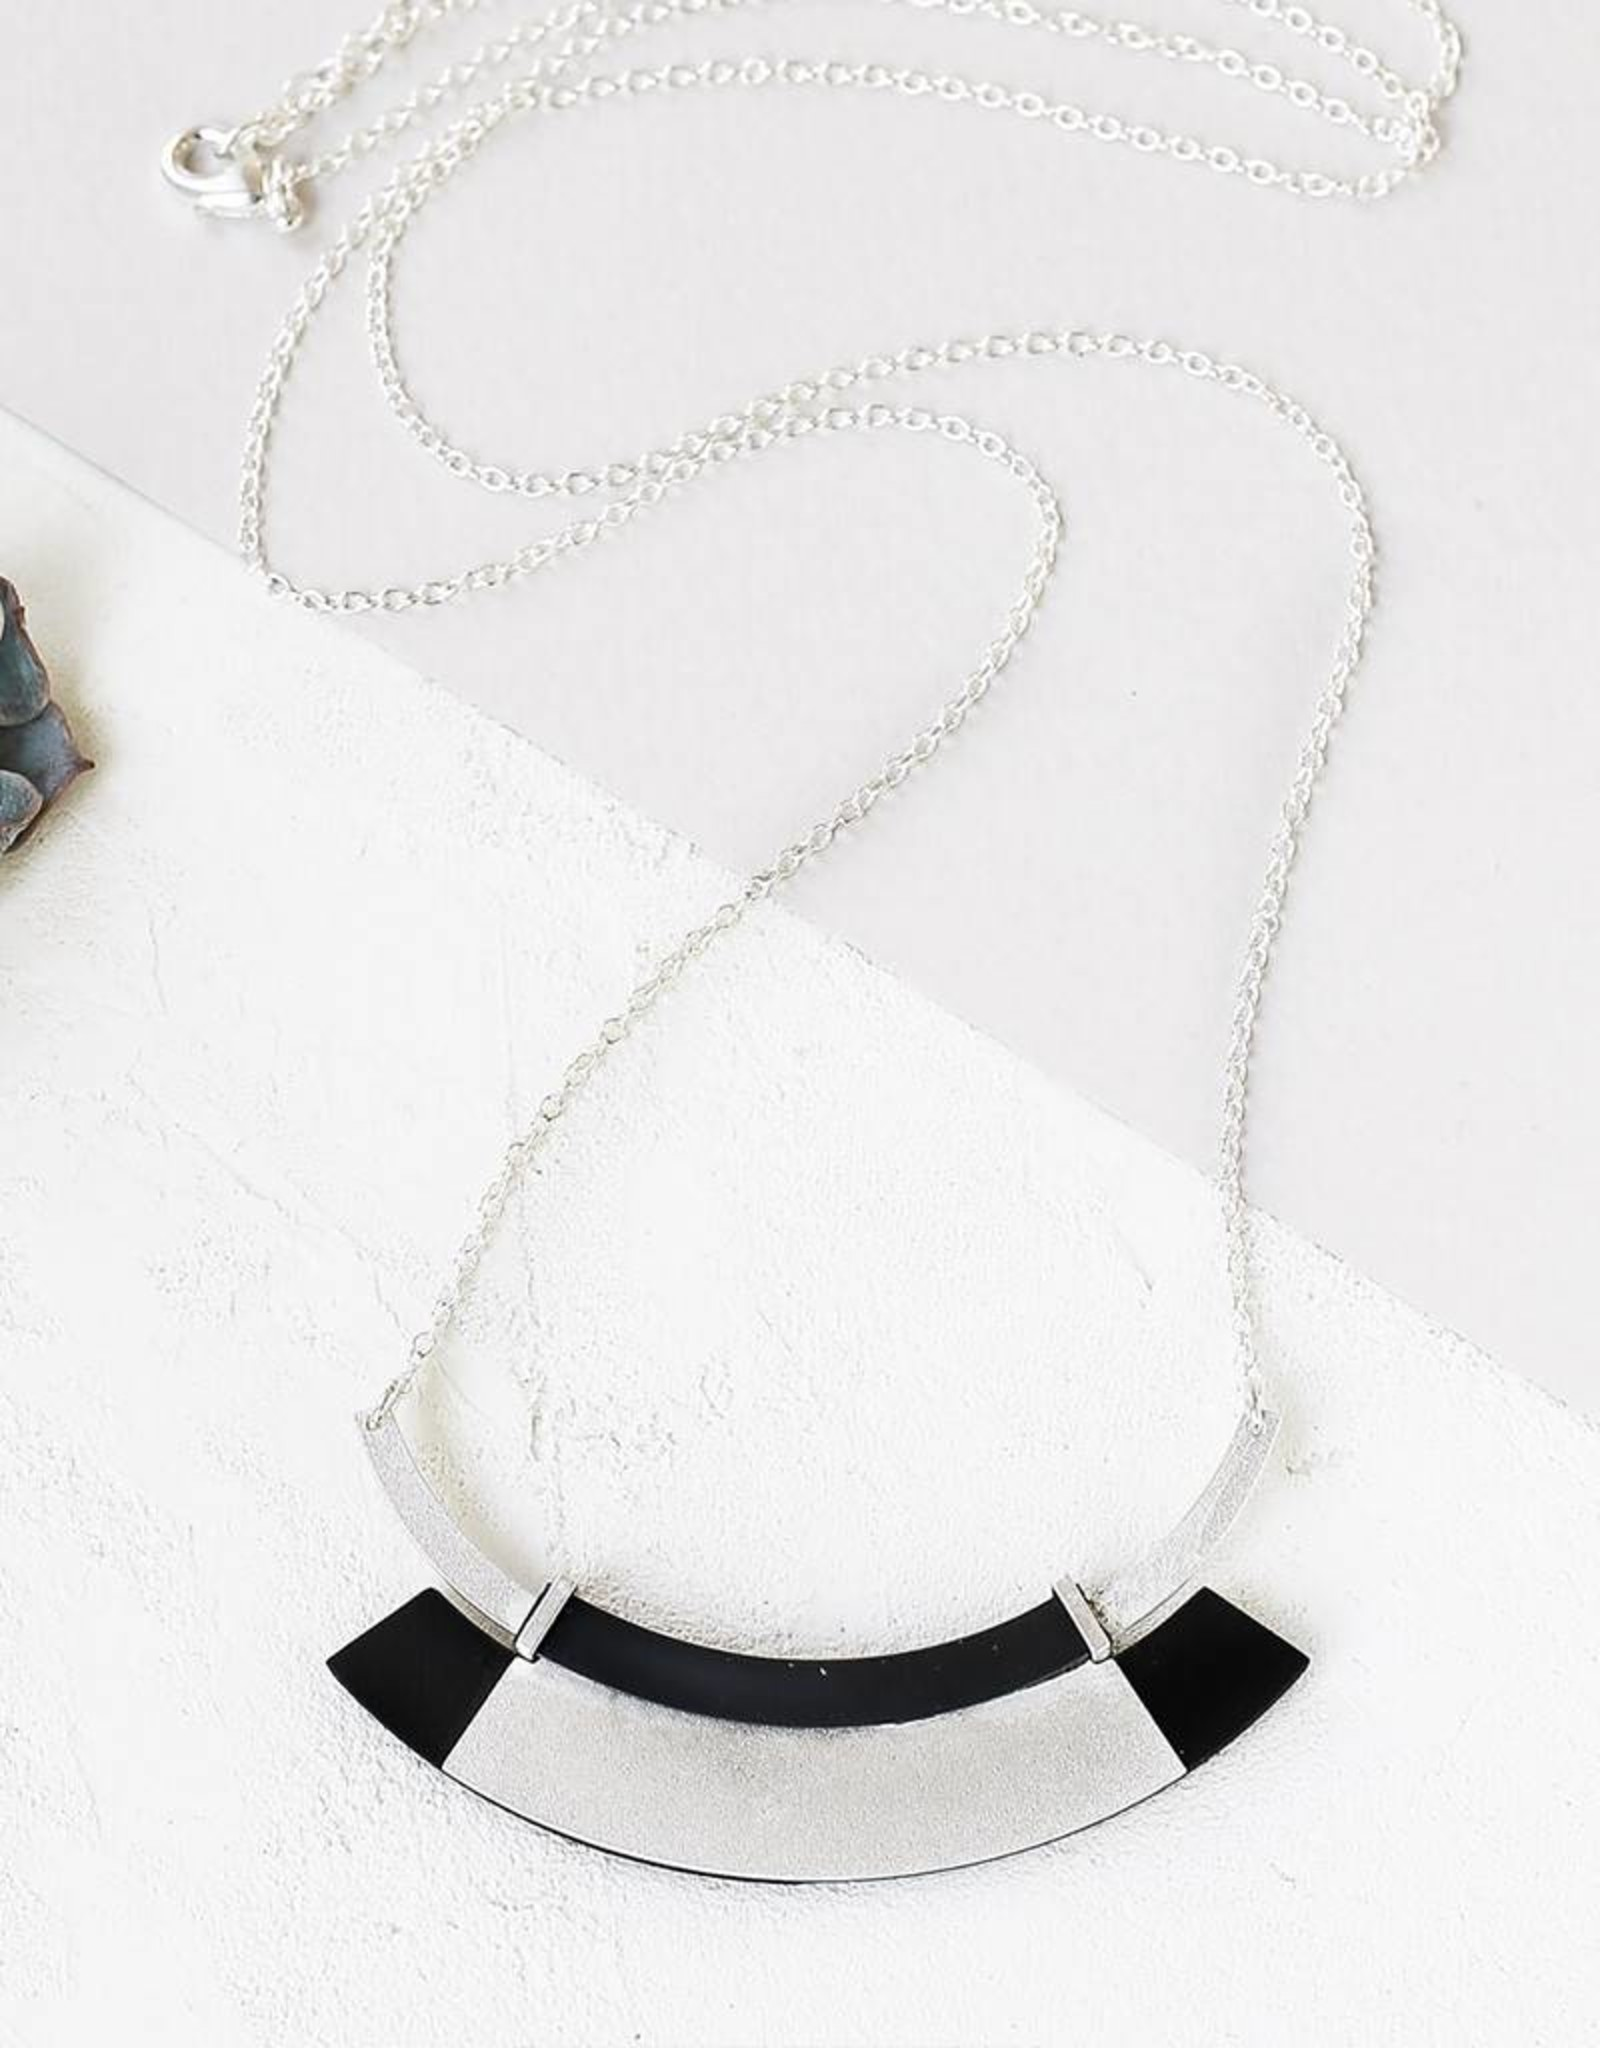 Shlomit Ofir Electric Necklace